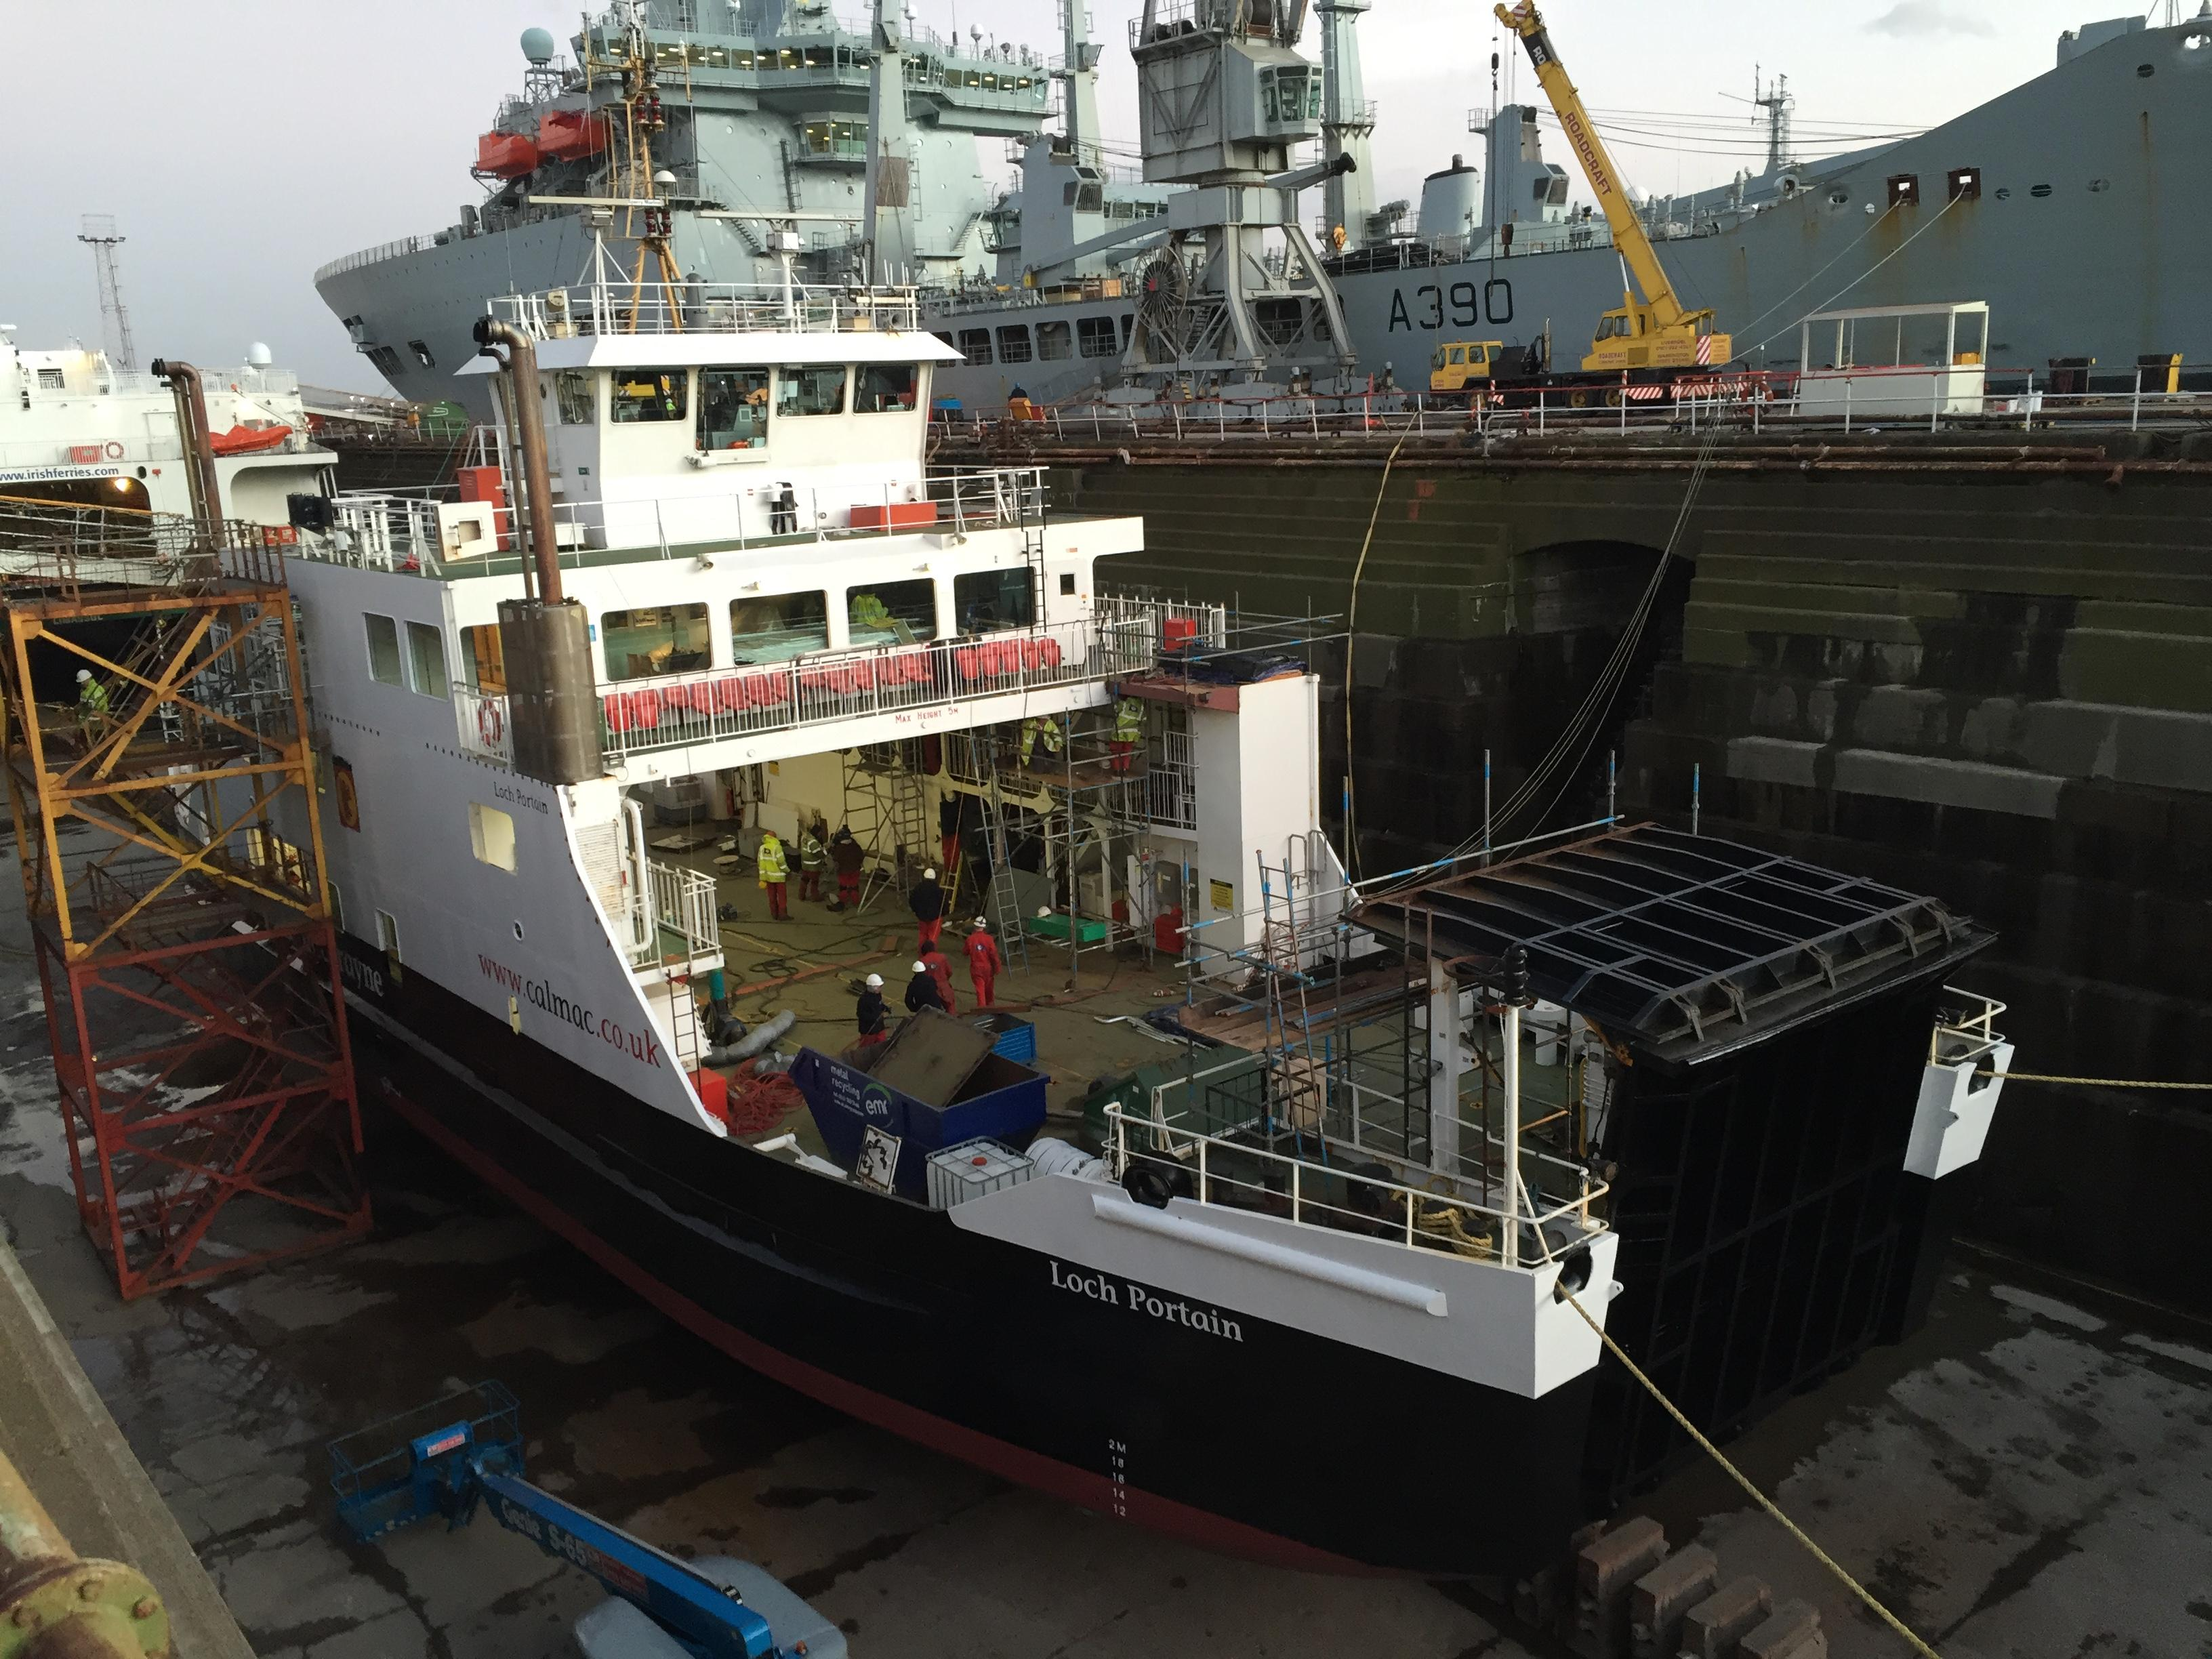 MV Loch Portain in dry dock